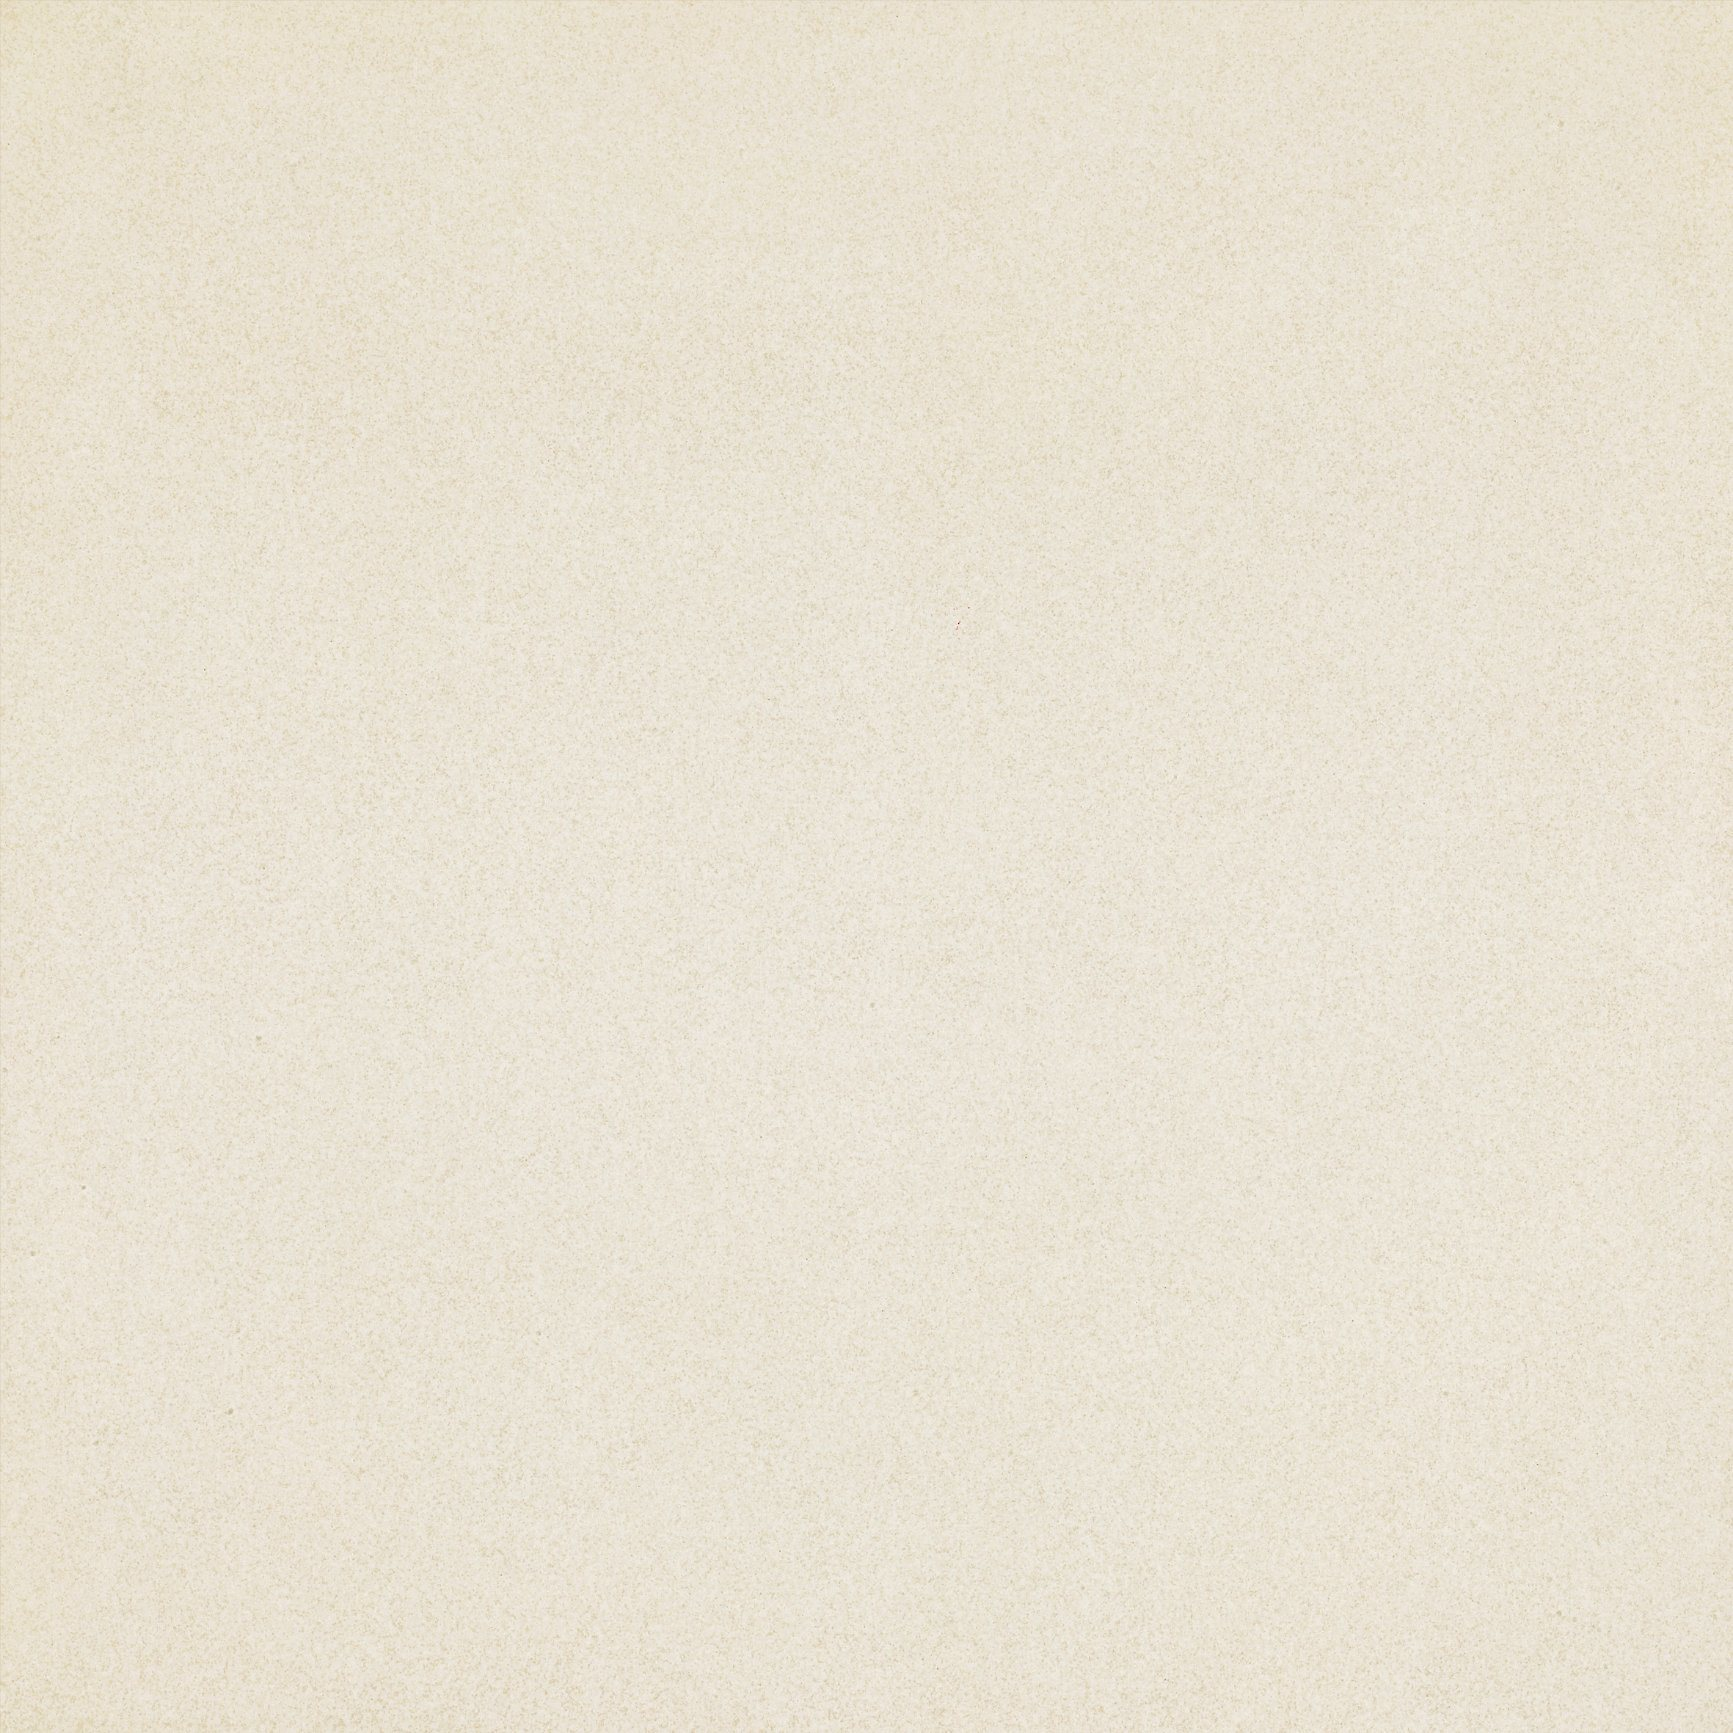 China White 24 24inch 600 600mm Off White Wall Tiles Ceramic Floor